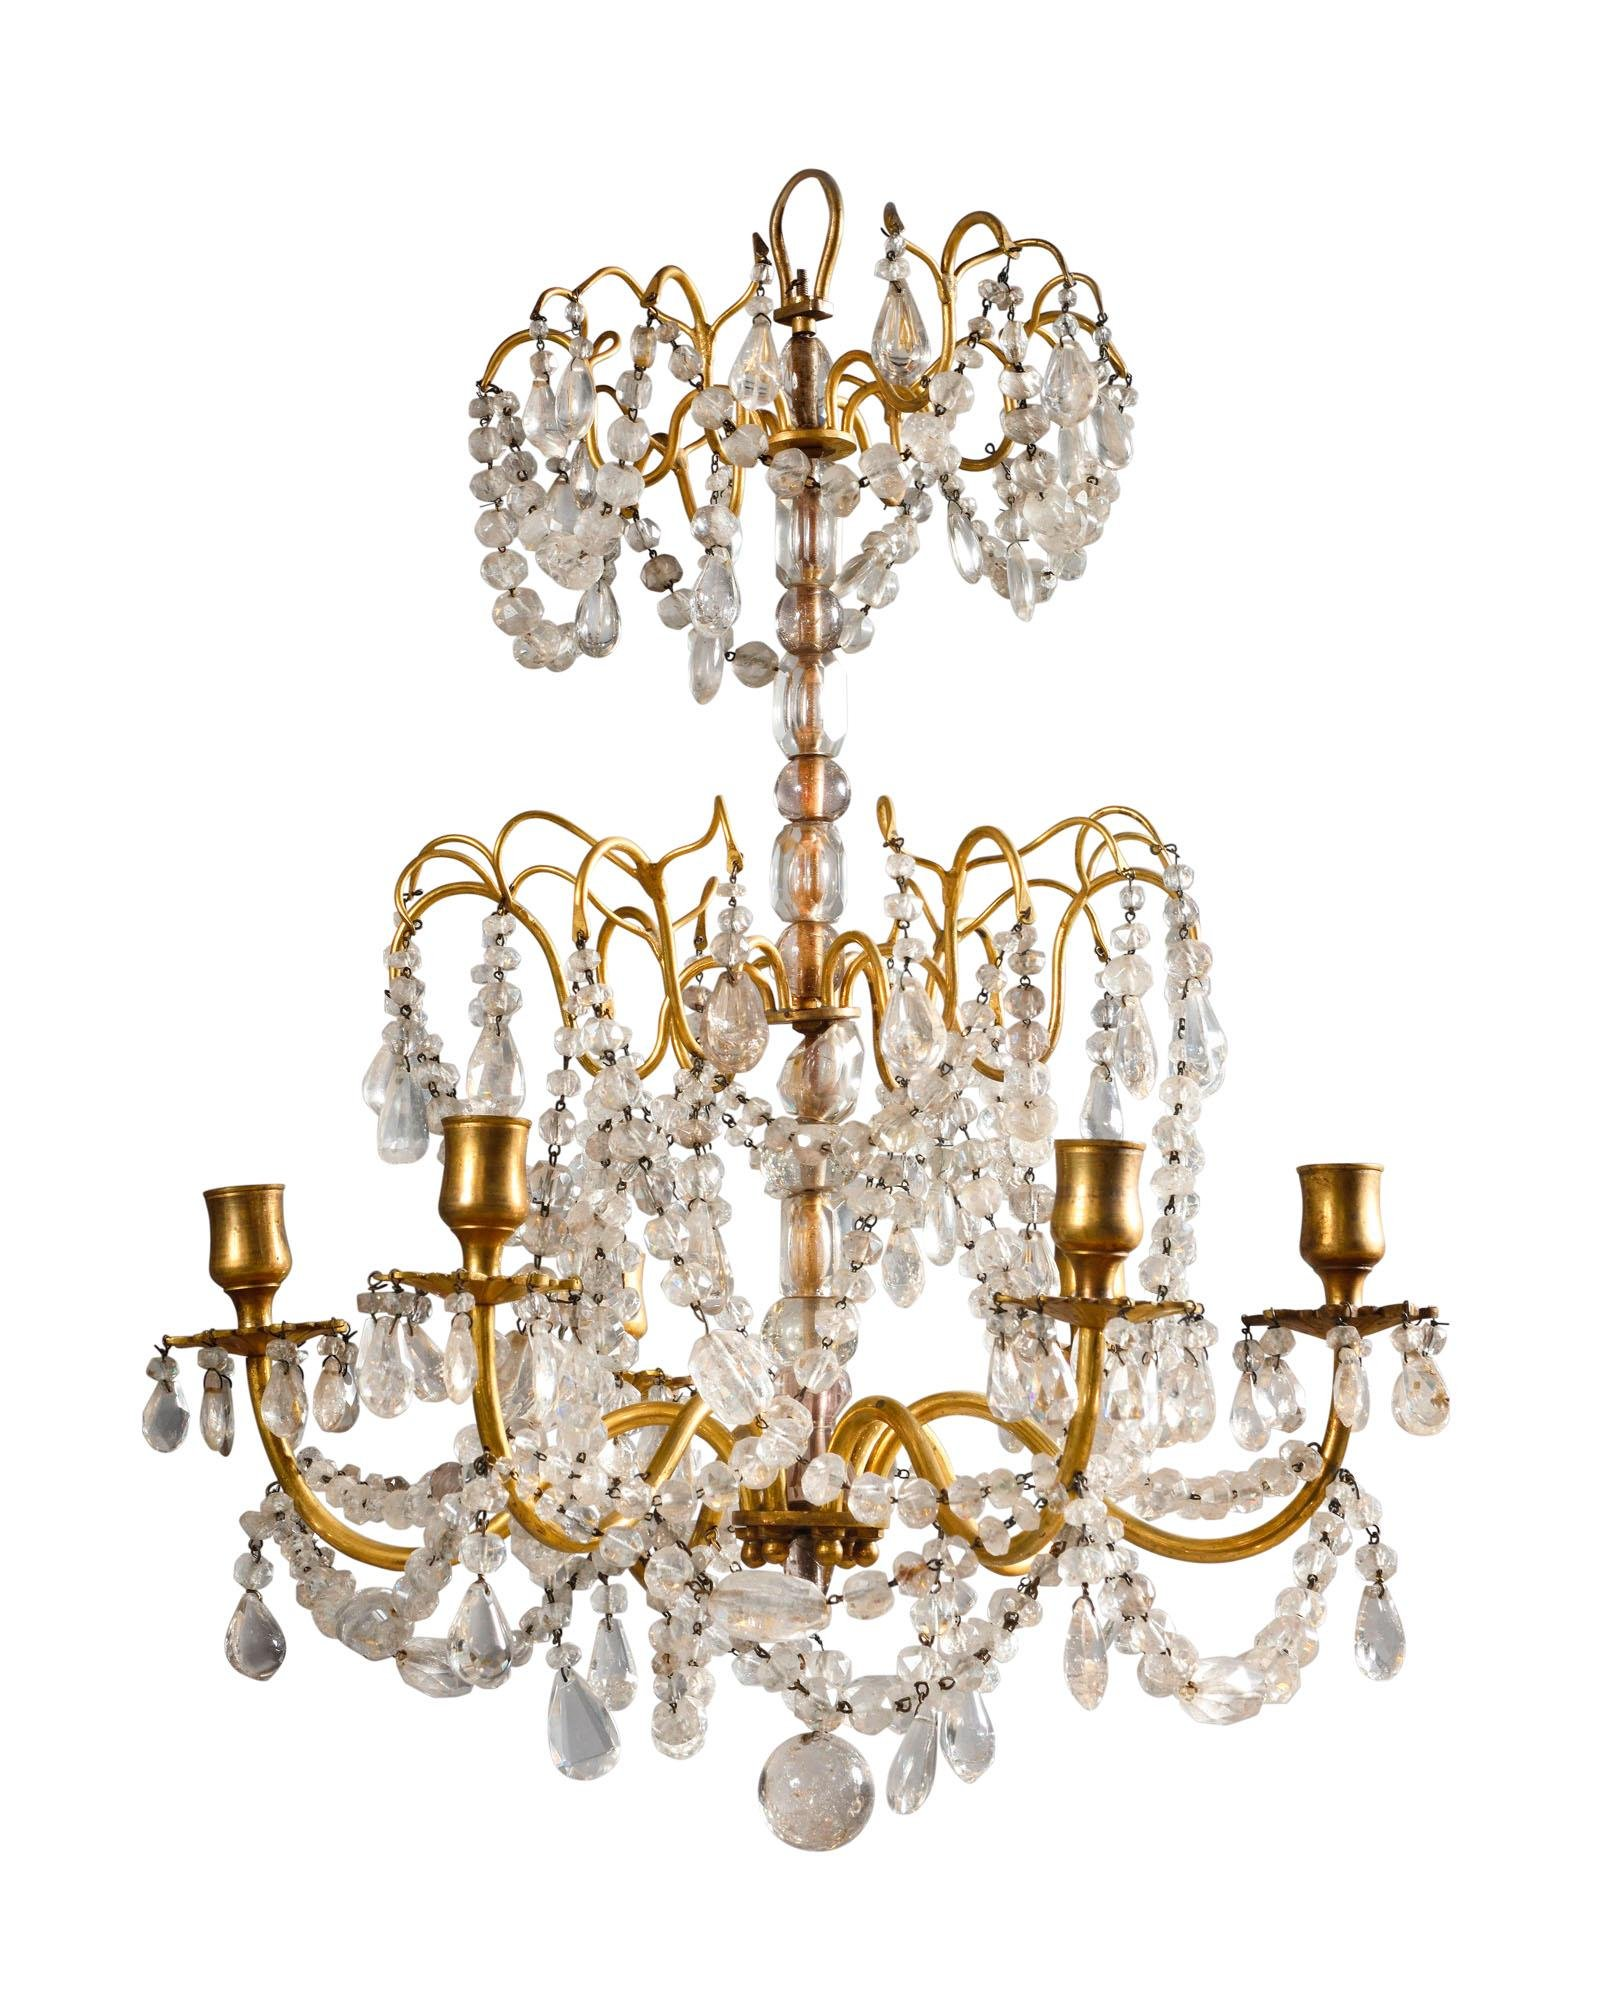 A FRENCH ORMOLU AND ROCK CRYSTAL SIX-LIGHT CHANDELIER